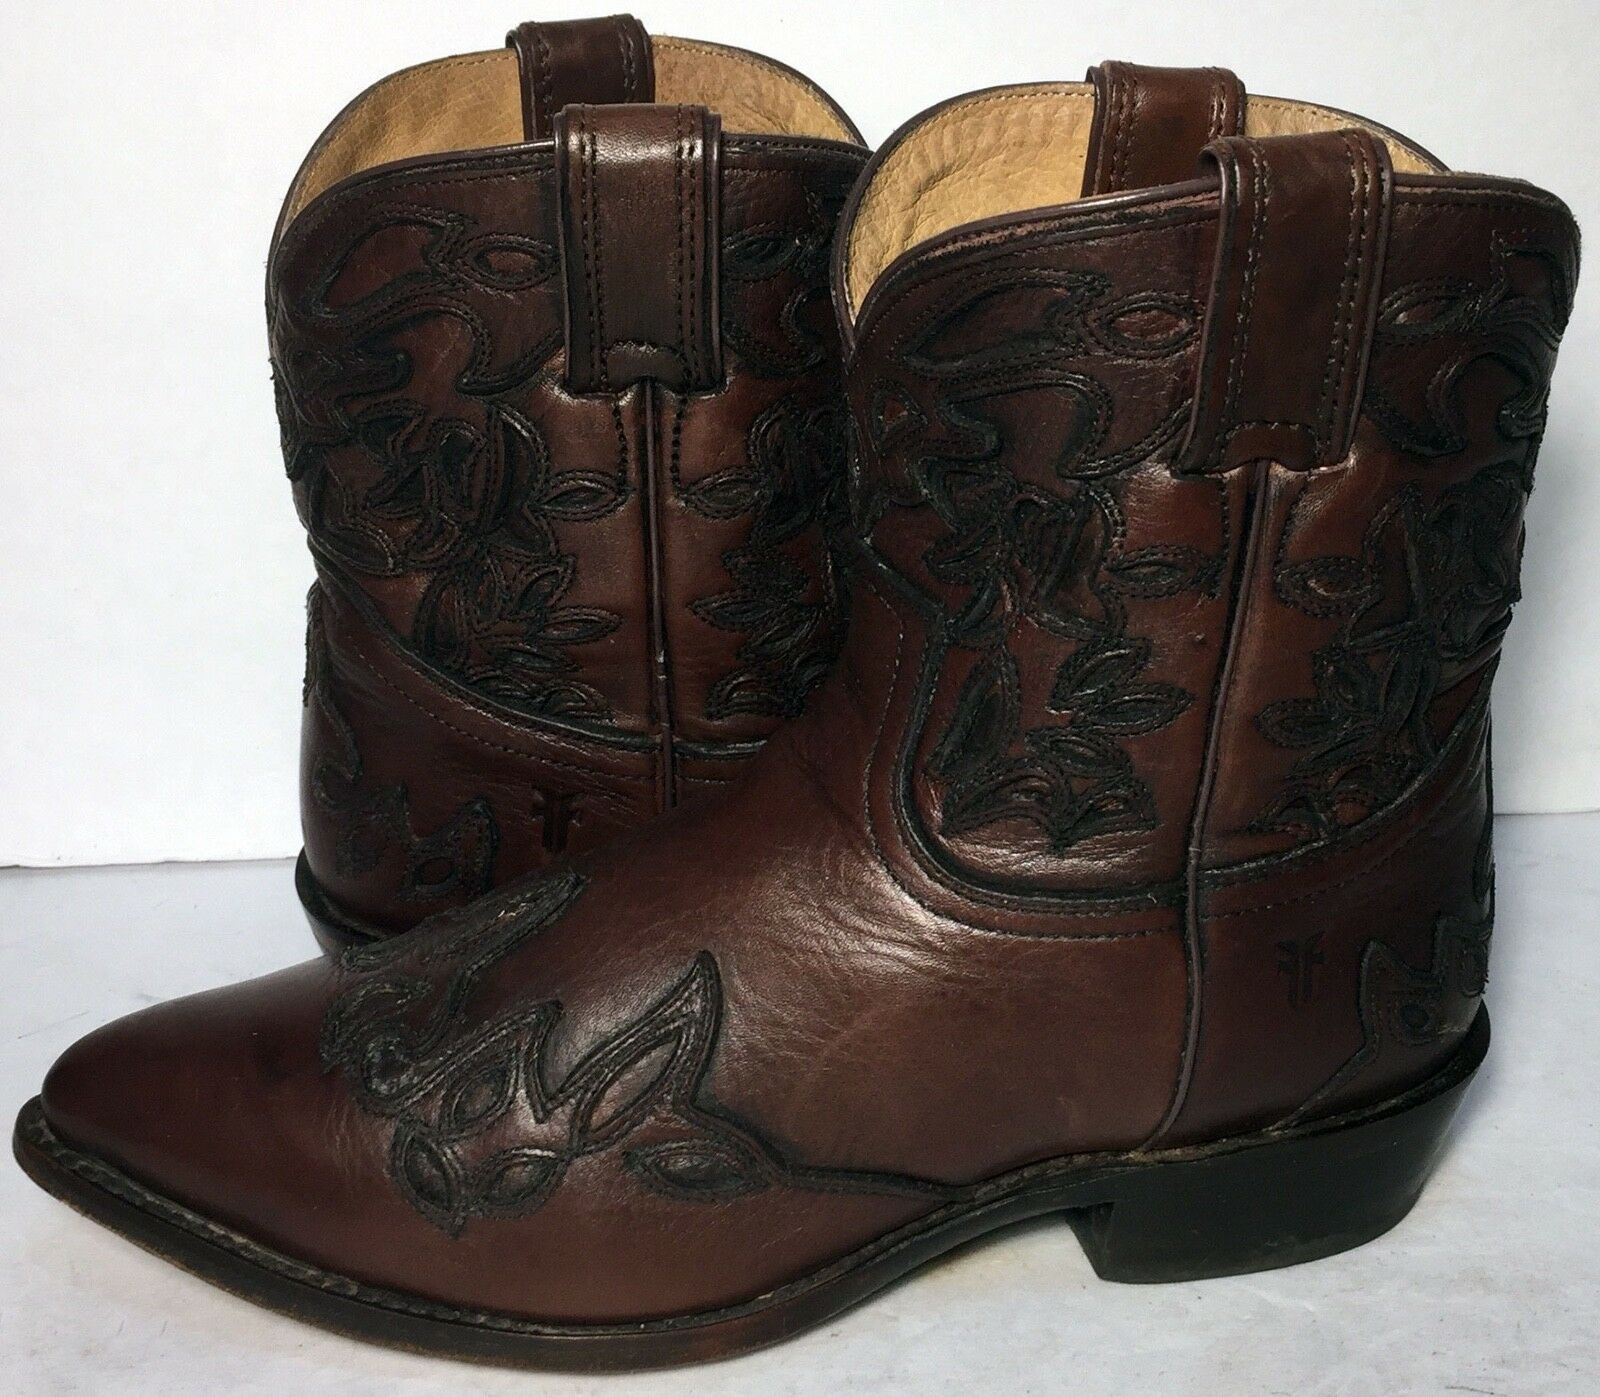 Frye 76042 Wyatt Short Short Short Brown Leather Western Cowgirl Boots Women's Size 9.5 5a5c35